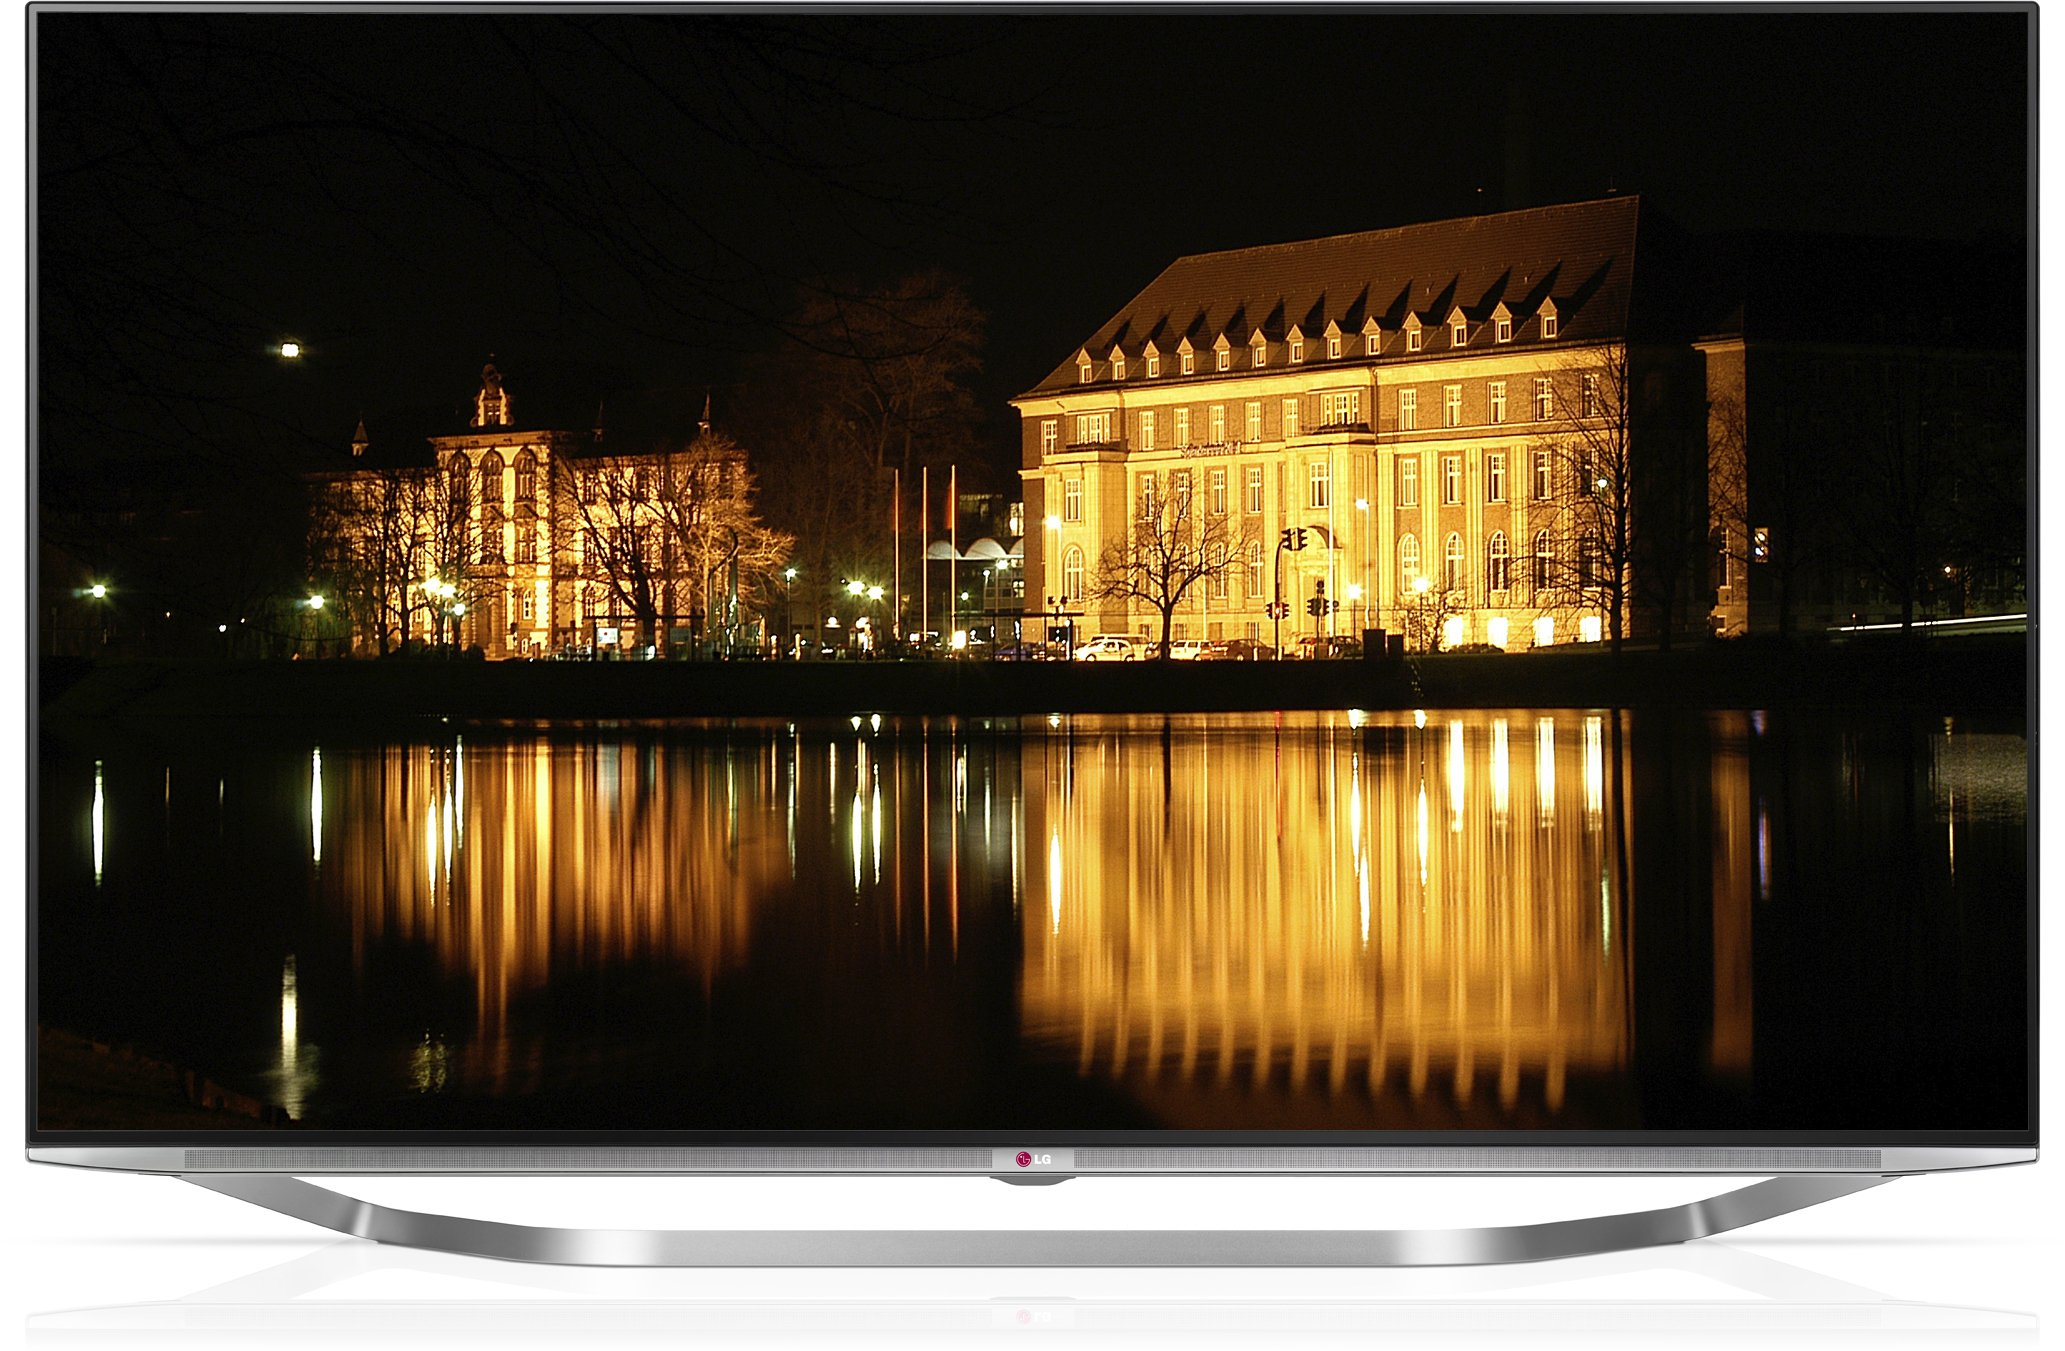 LG 55UB950V - TV Led 55 55Ub950V Uhd 4K, 1250 Hz Mci, Wi-Fi, Smart TV Y Cinema 3D: Amazon.es: Electrónica